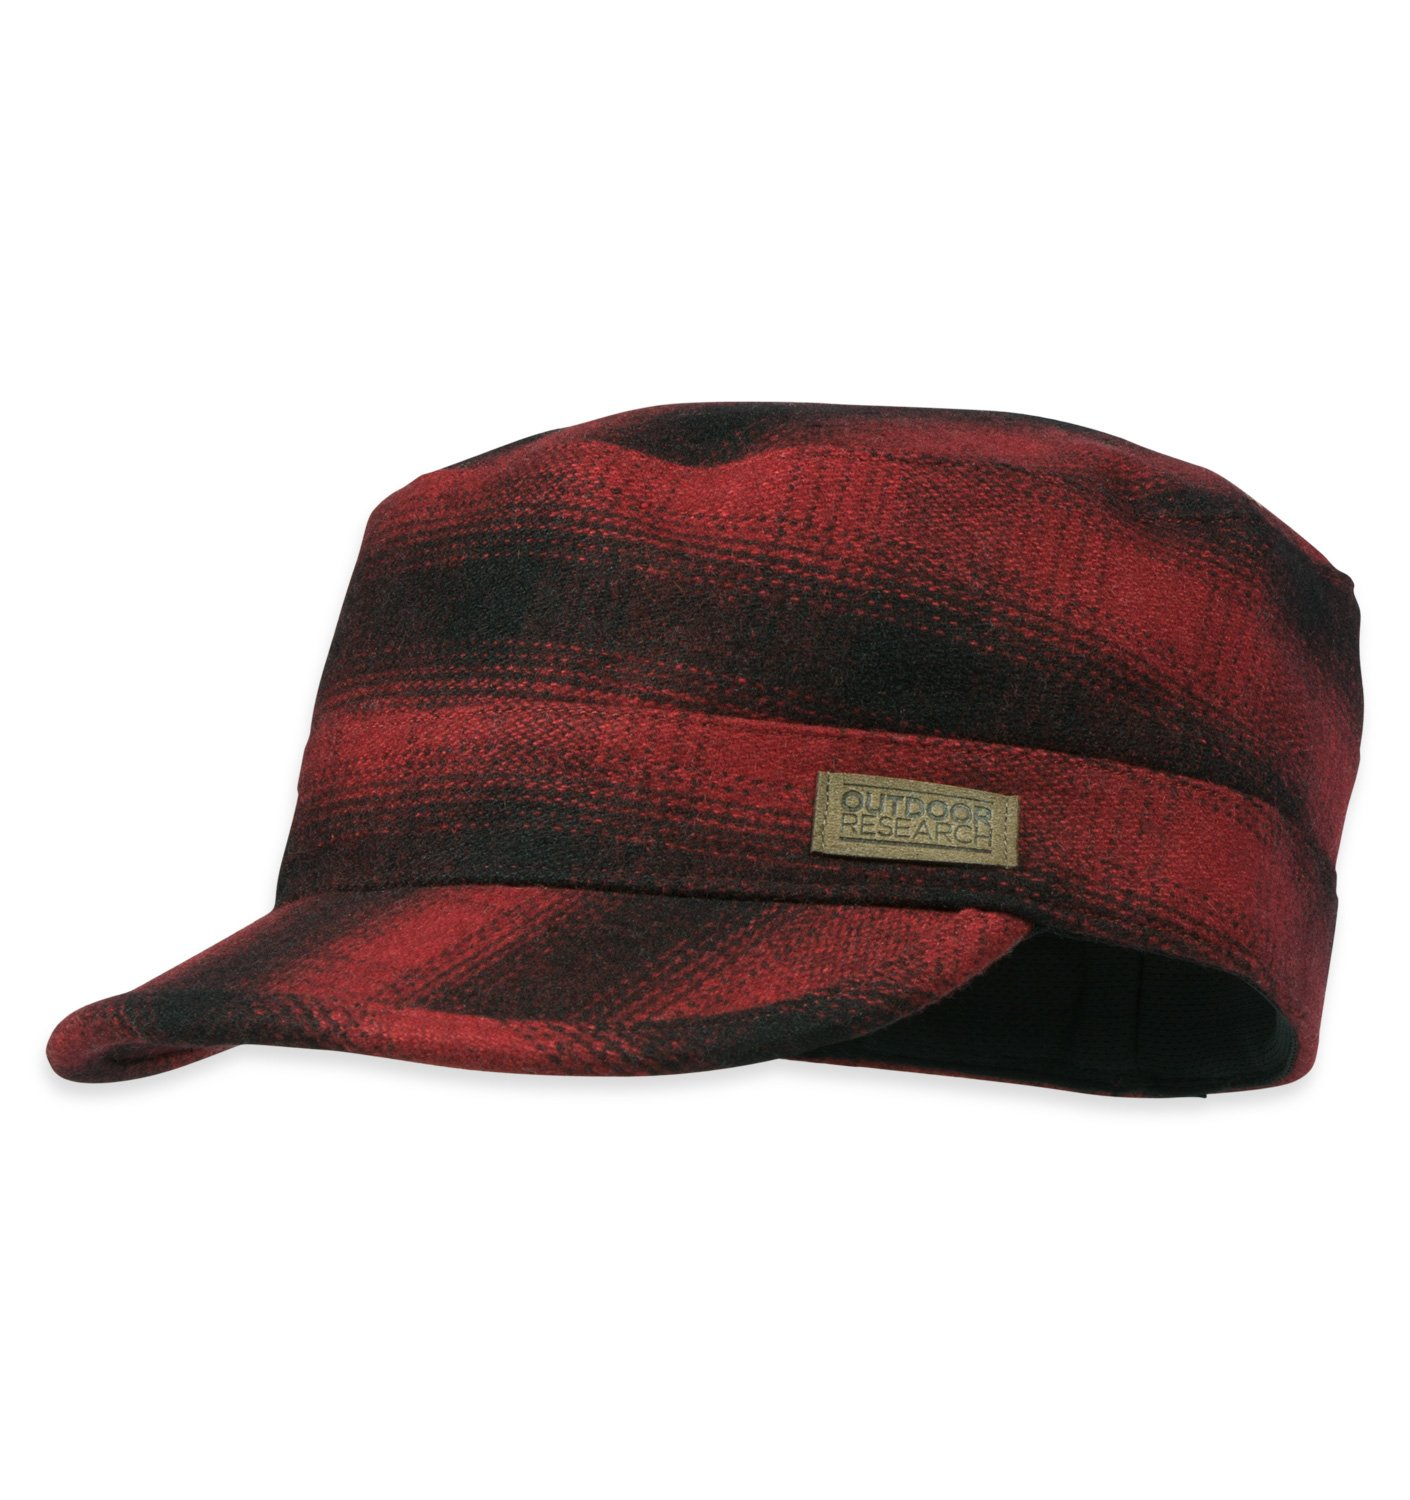 Outdoor Research Kettle Cap, Redwood/Black, X-Large by Outdoor Research